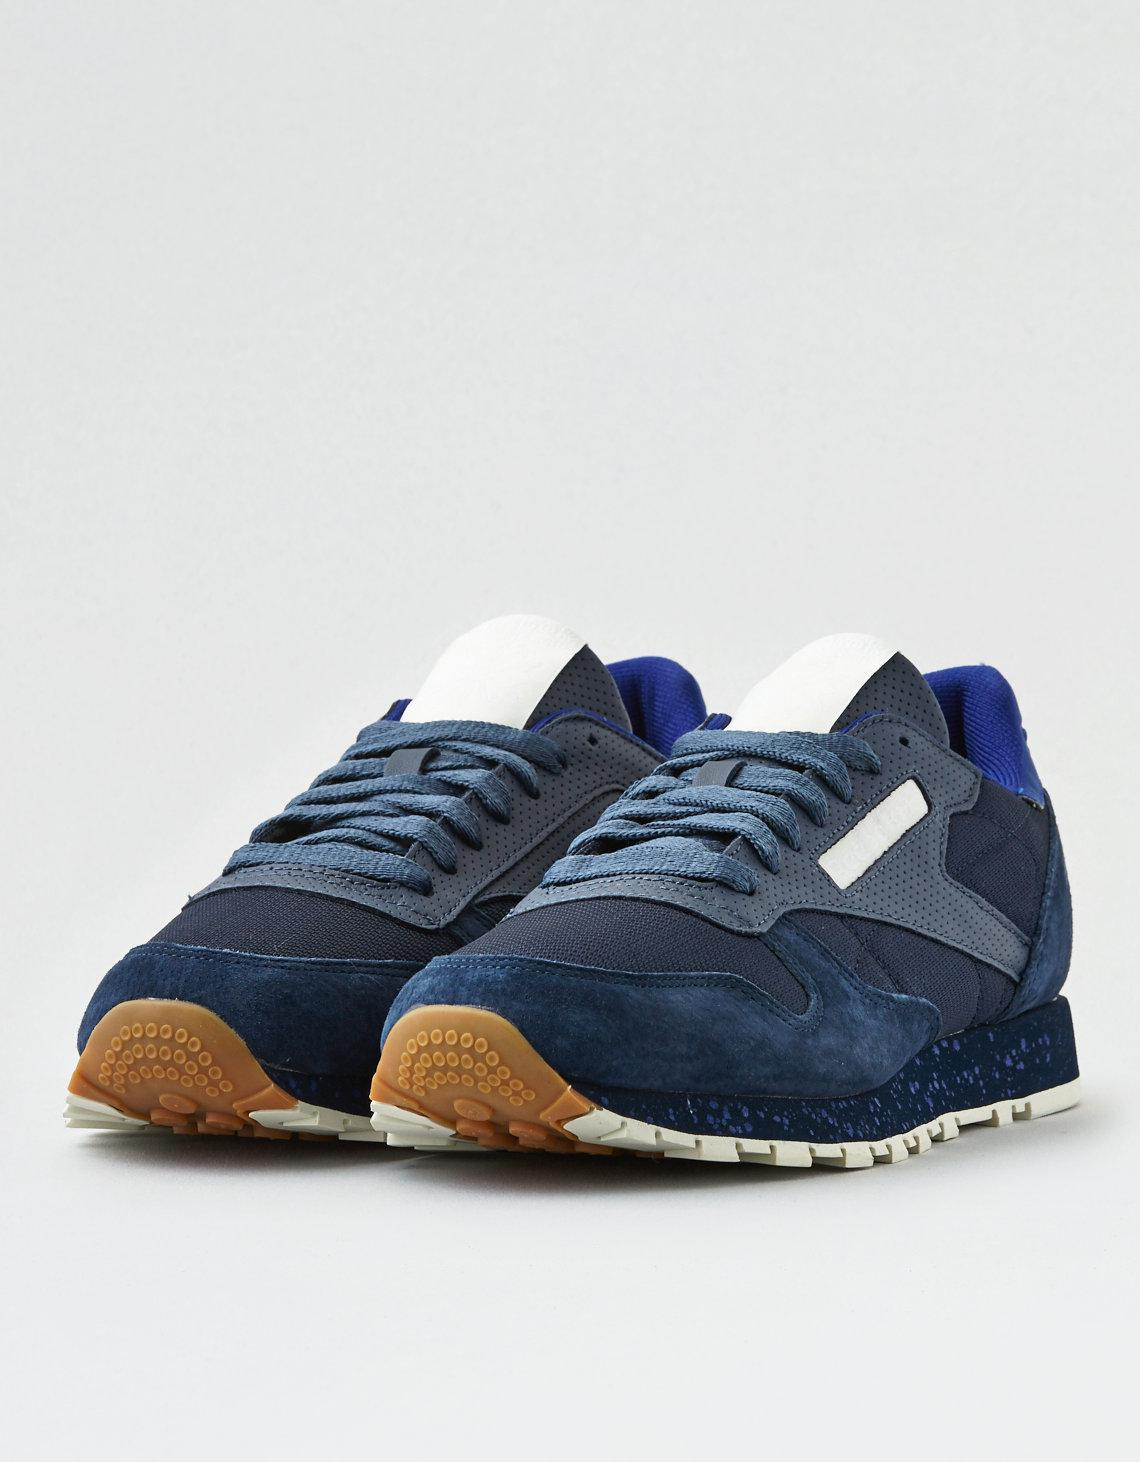 Lyst - American Eagle Reebok Classic Leather Sm in Blue for Men 664a74535